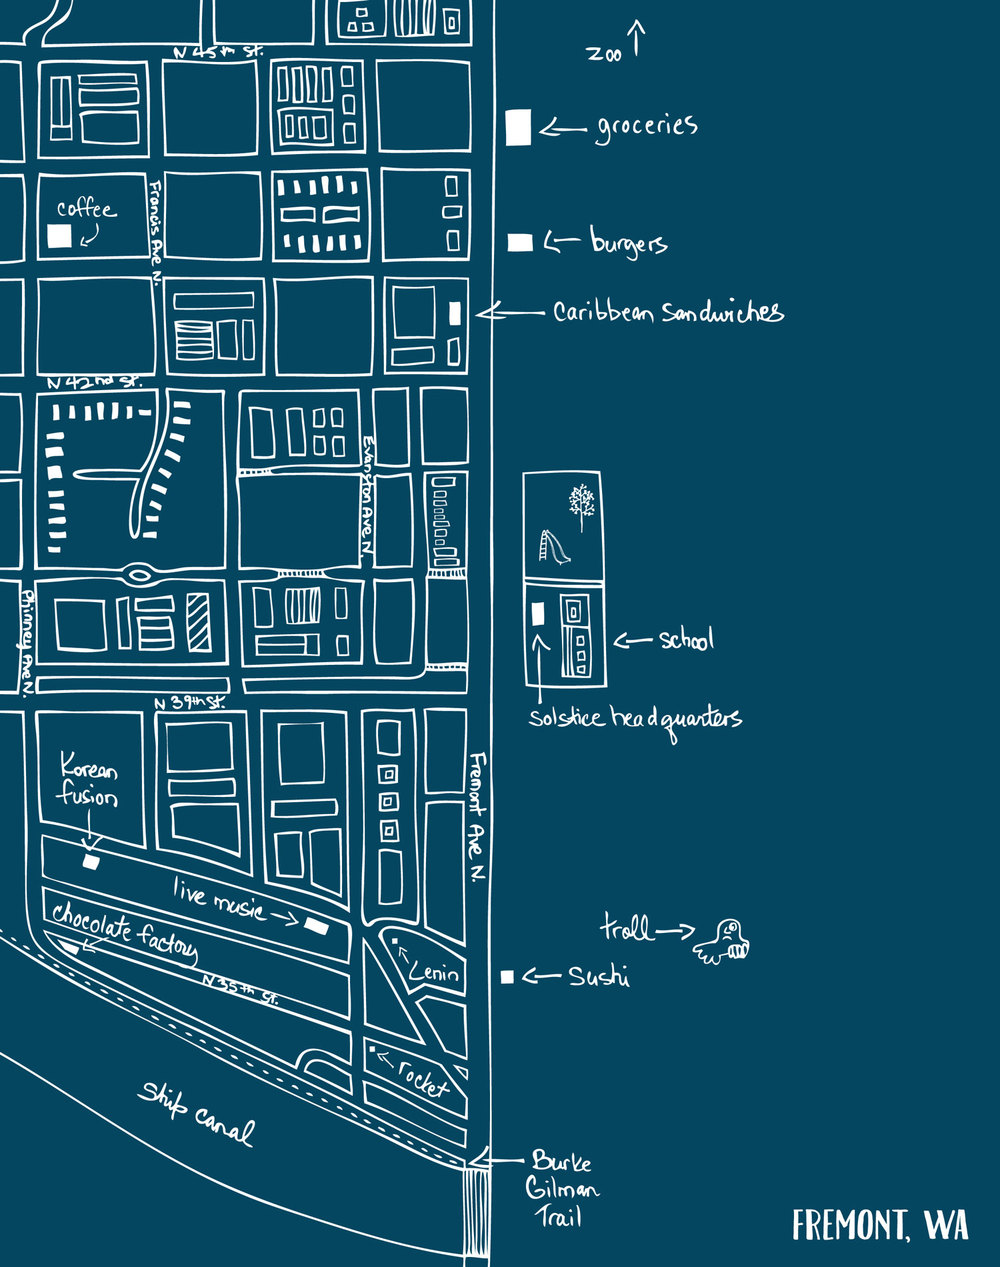 Map of Fremont neighborhood in Seattle by Laurie Baars